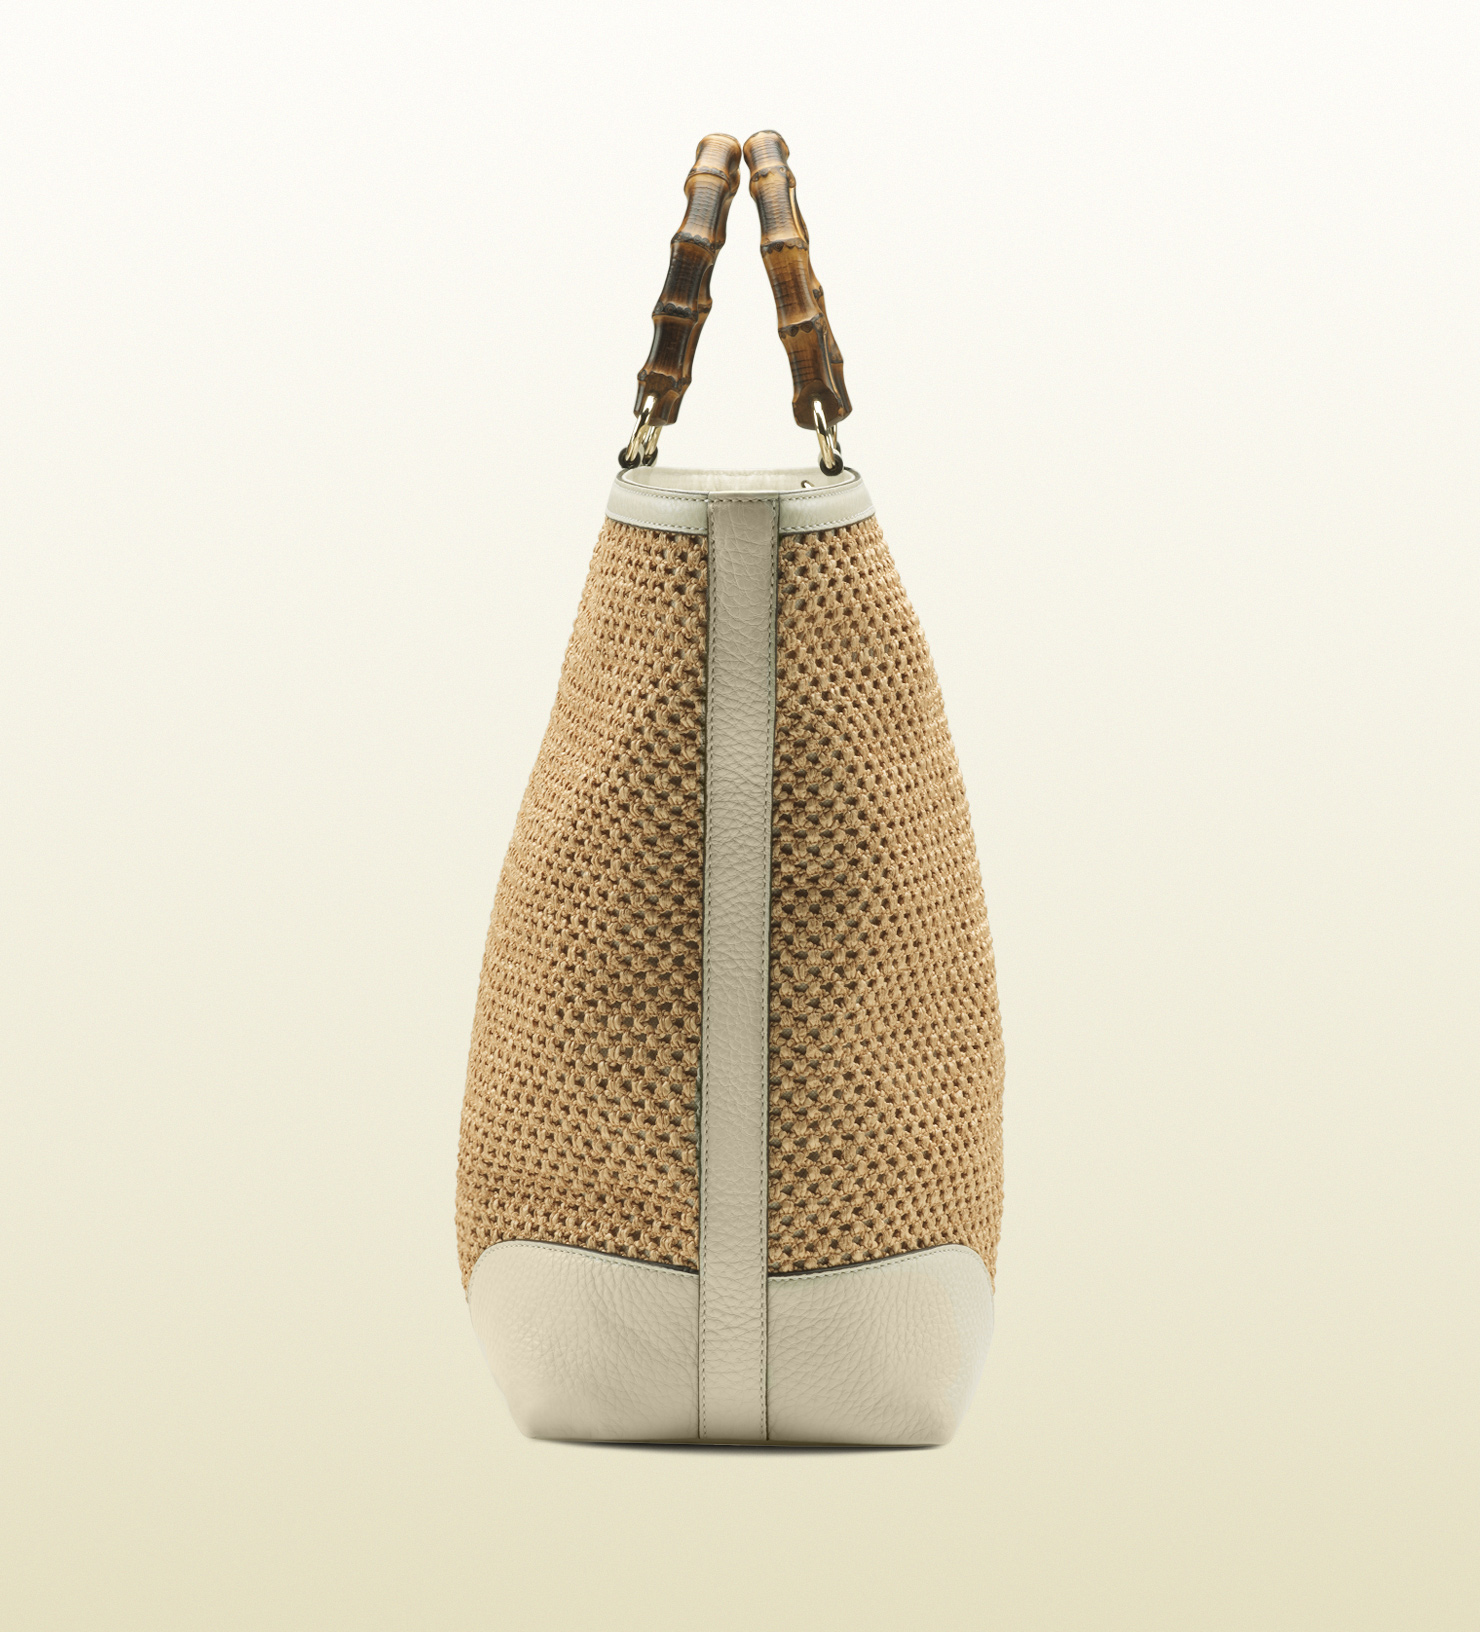 43848c1705a Gucci Bamboo Shopper Straw Tote In Natural Lyst